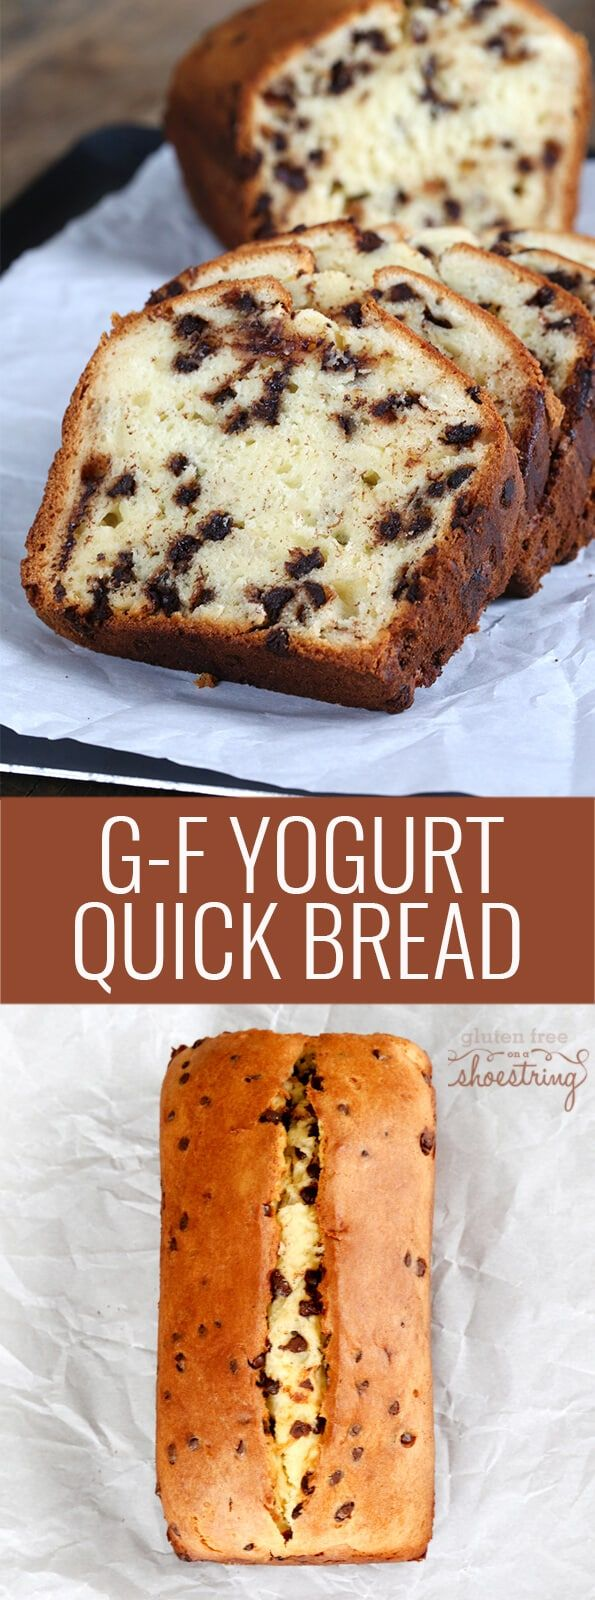 This super simple recipe for chocolate chip yogurt gluten free quick bread always makes a perfectly moist and tender loaf!